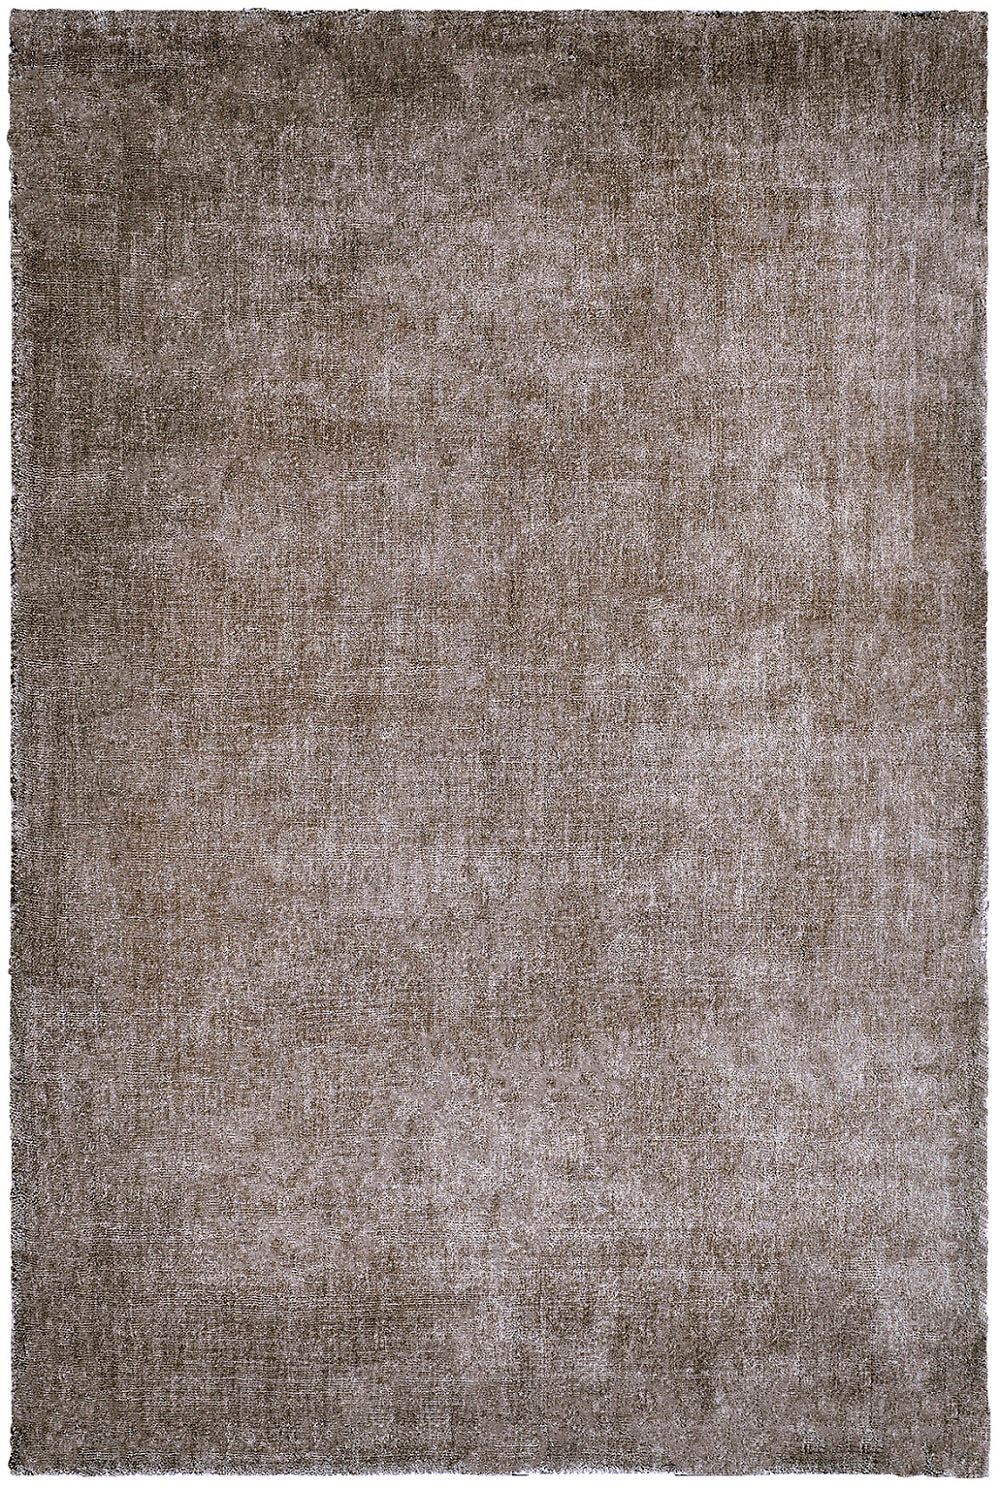 Taupe Tapijt Handgeweven Vloerkleed - Omid Impeccable - Omid Carpets